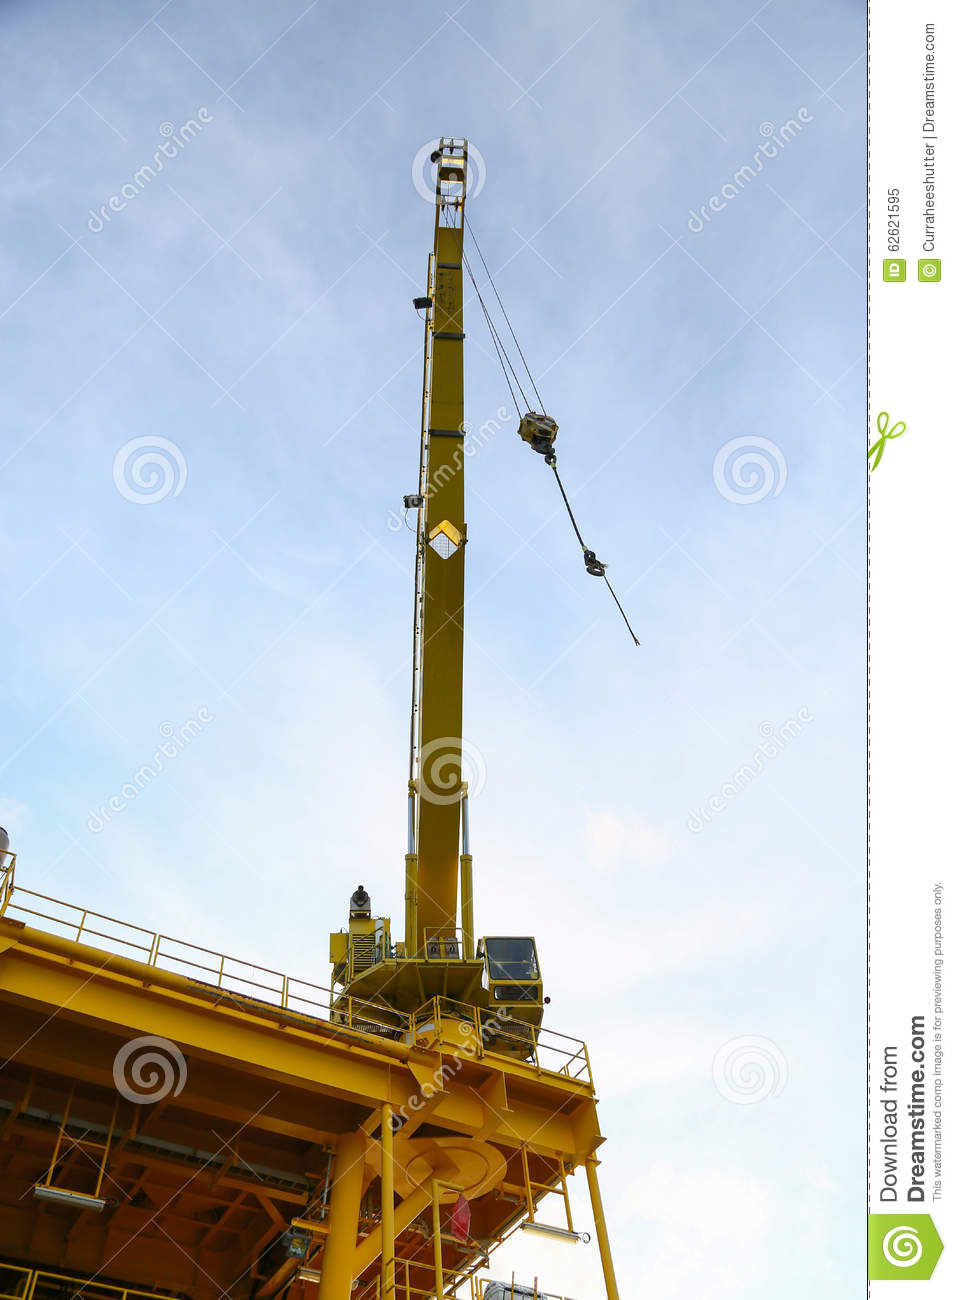 Gas Lift Operation Animation : Crane operation transfer cargo on the platform and moving